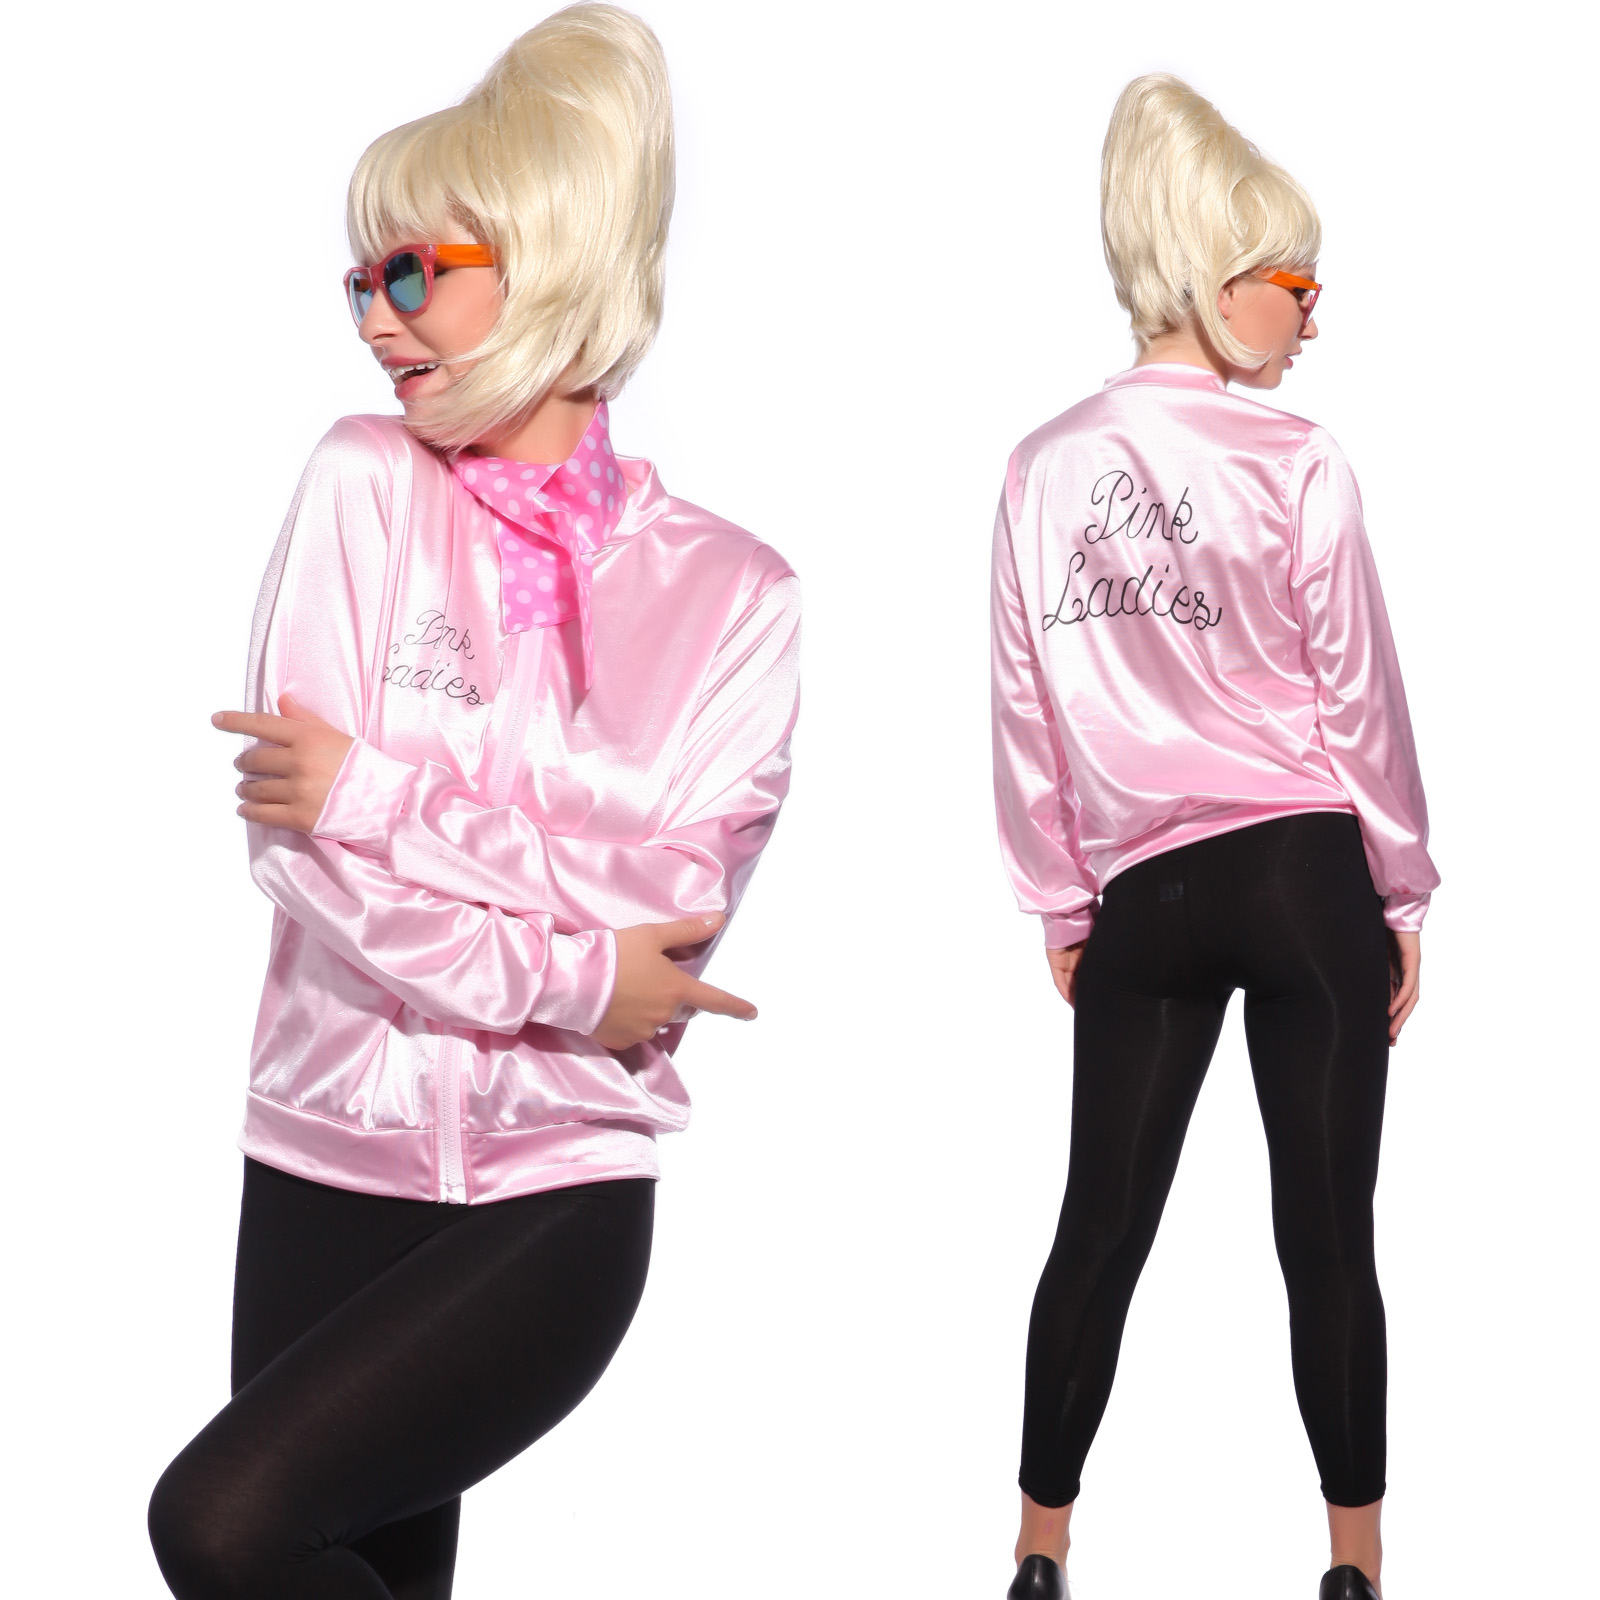 50s Grease Pink Lady Ladies Jacket Top T-shirt Fancy Dress ...